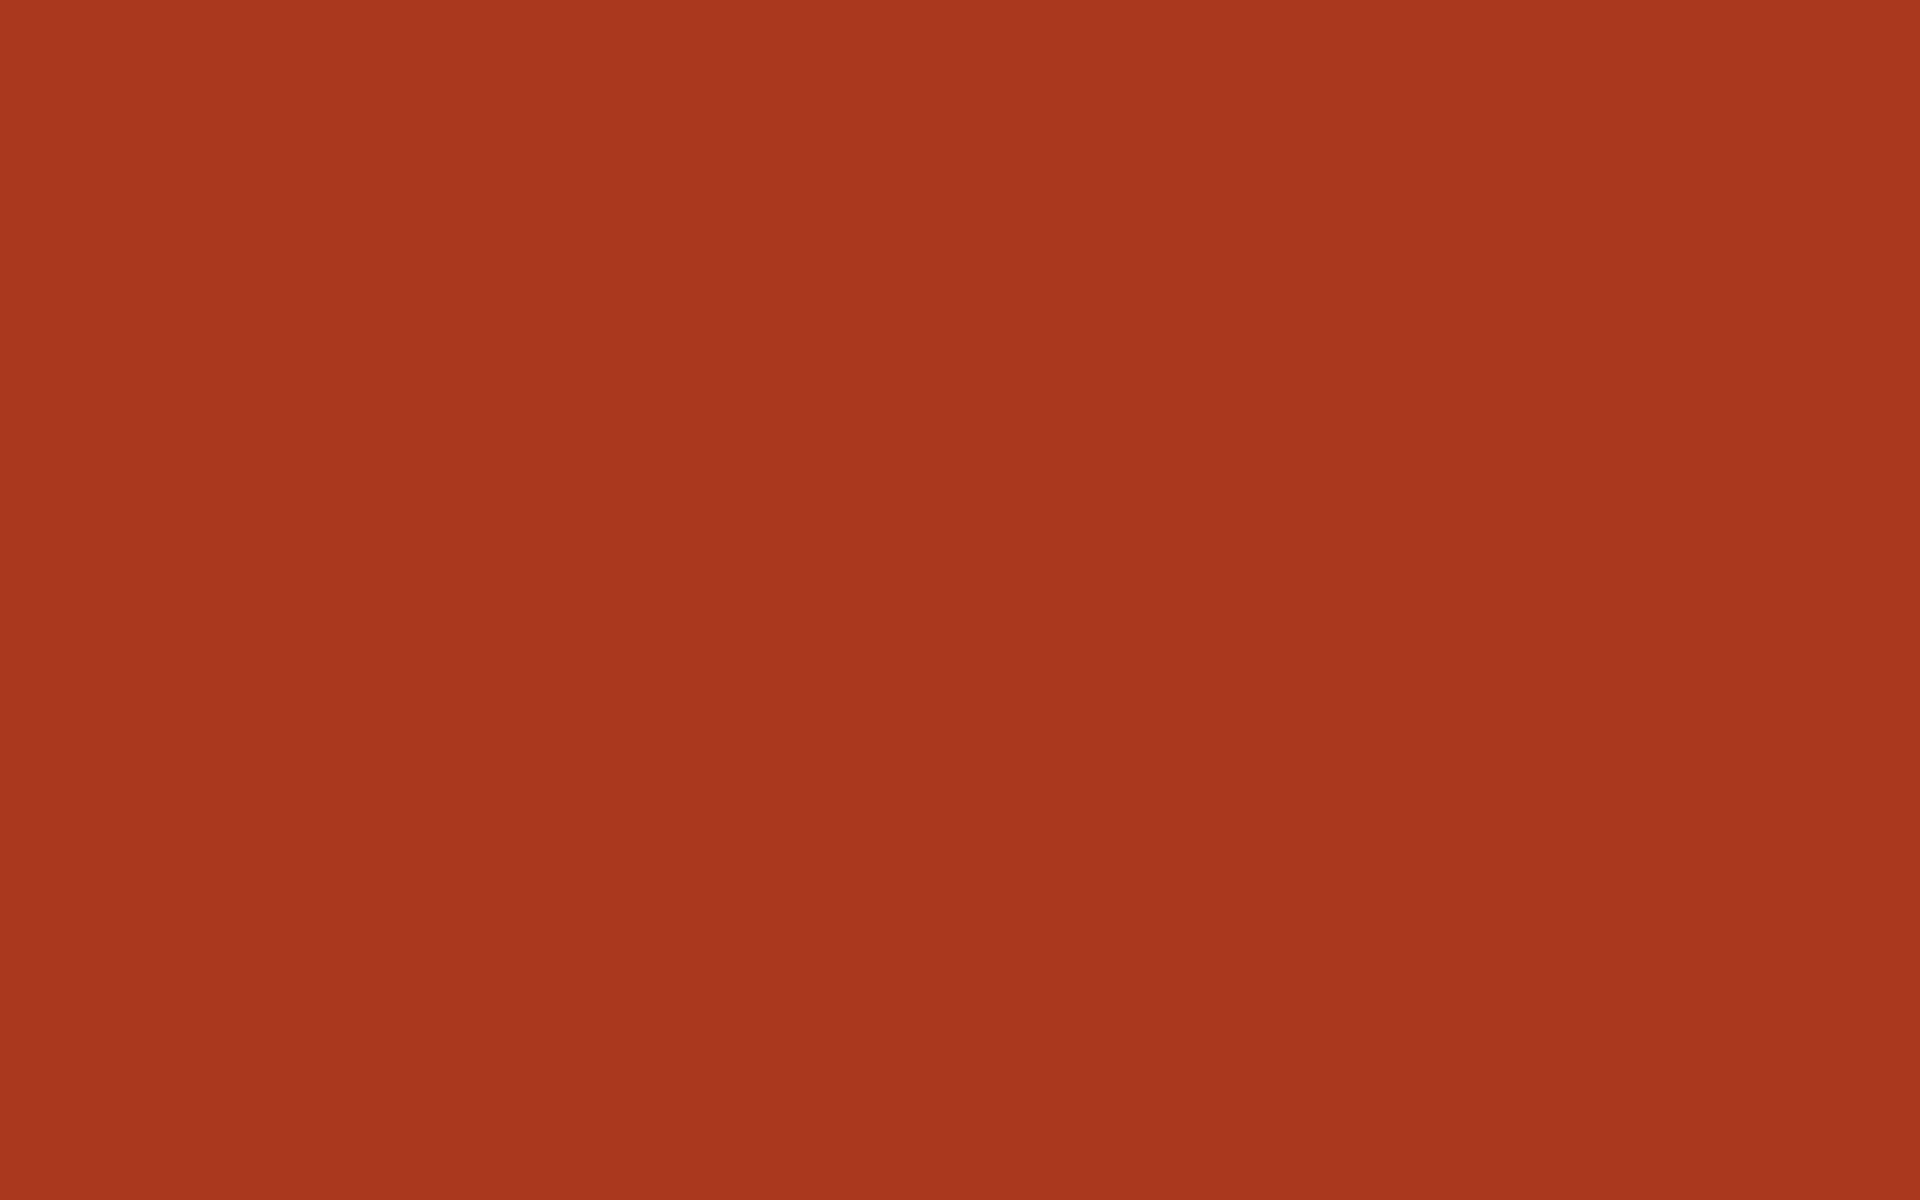 1920x1200 Chinese Red Solid Color Background